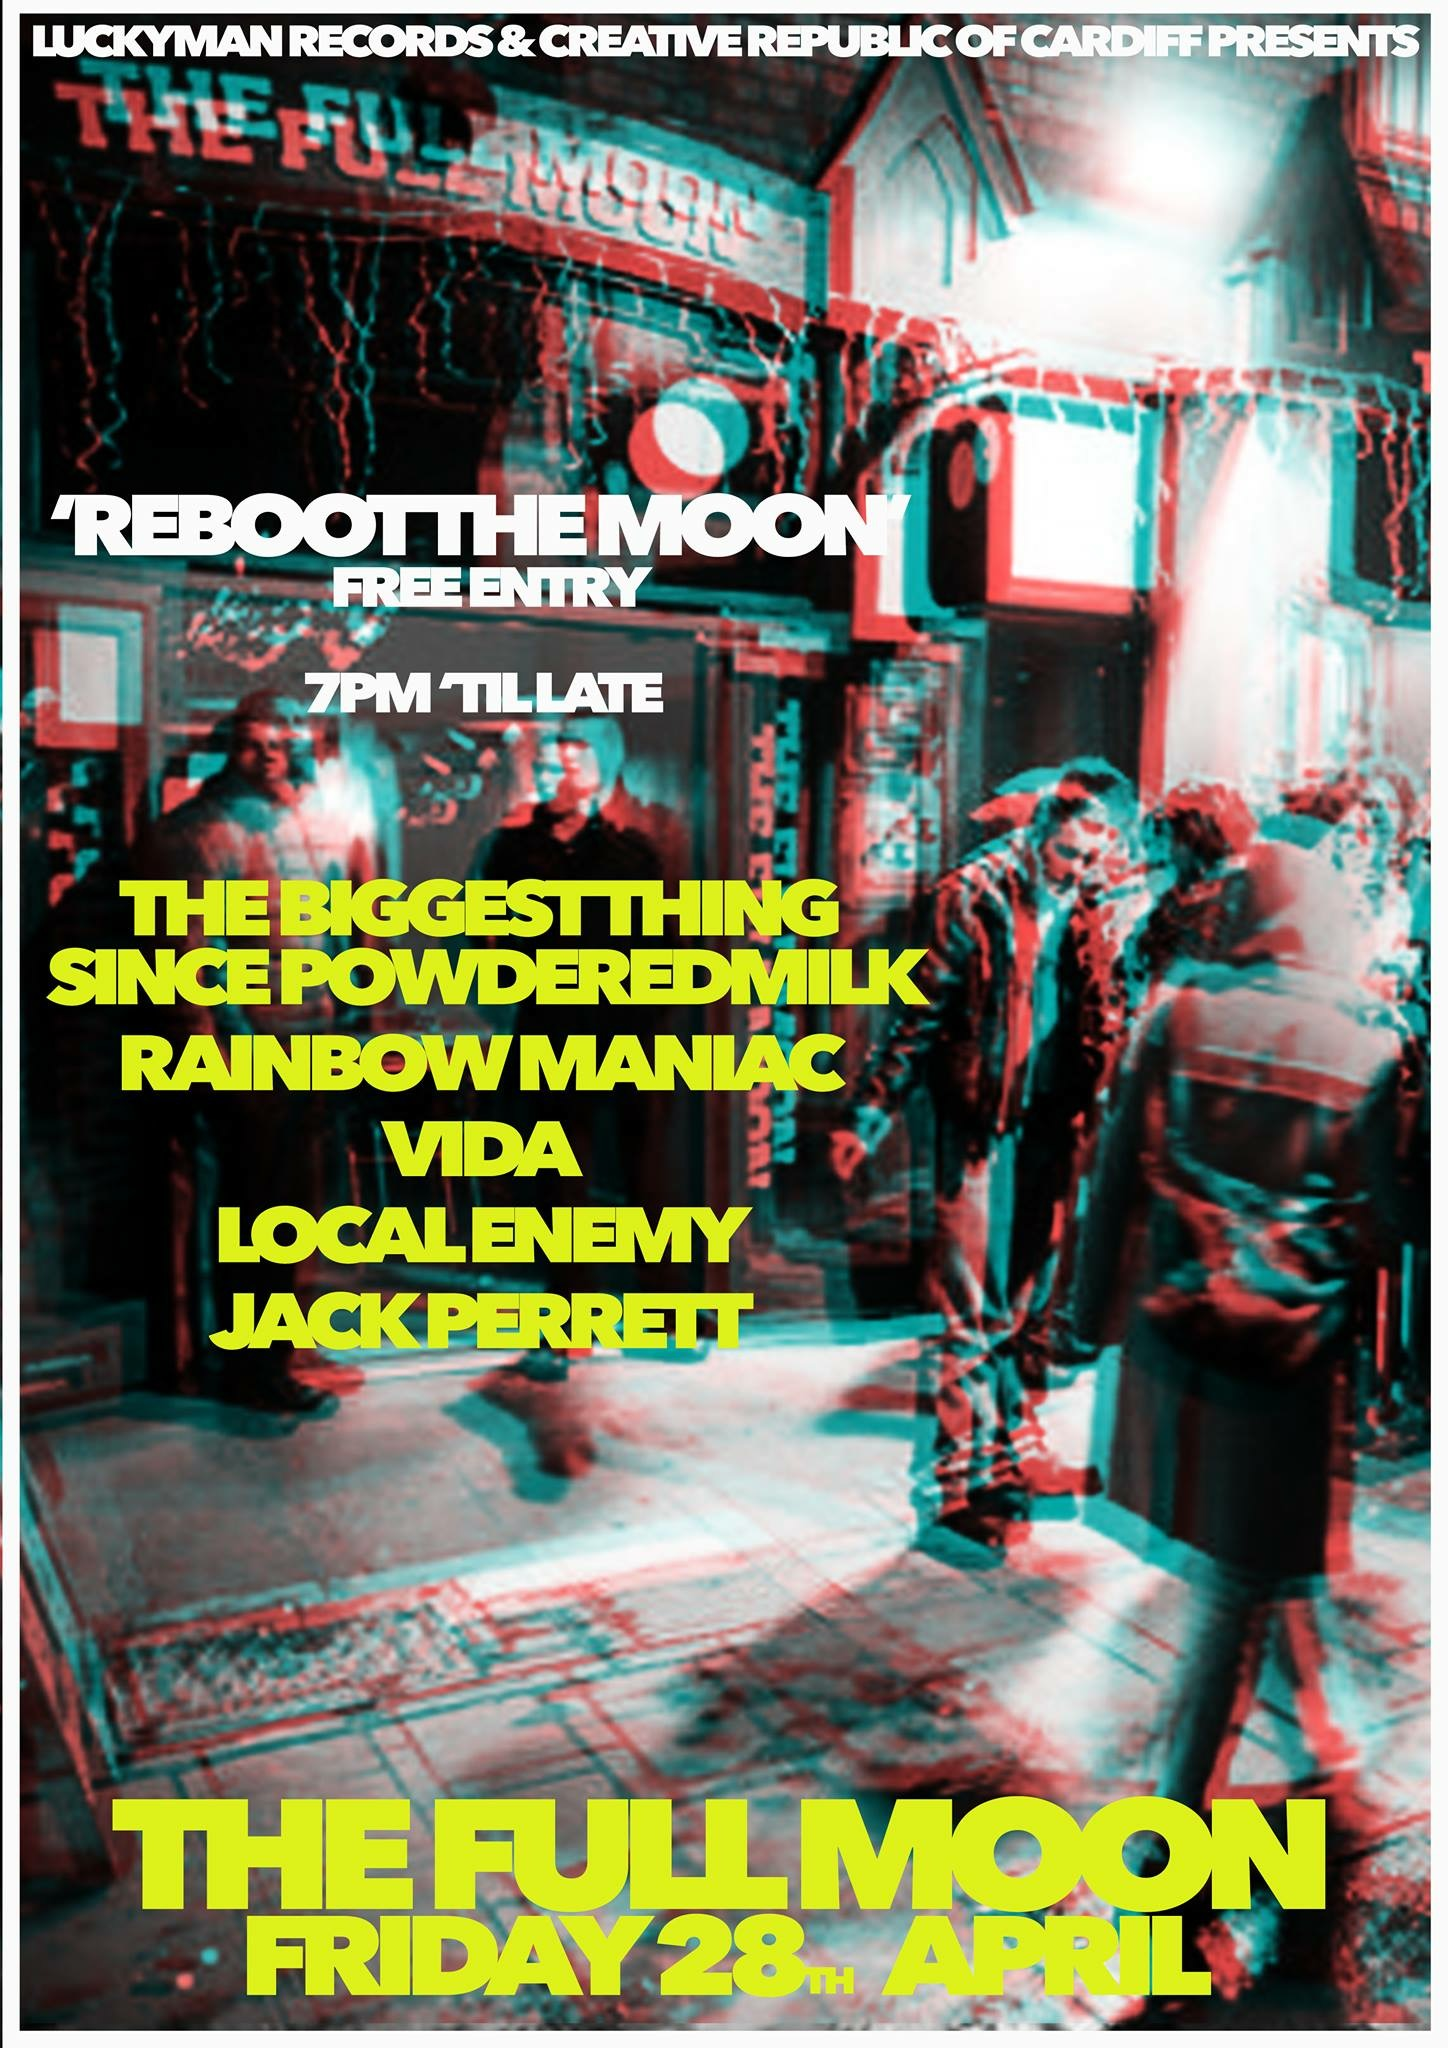 Reboot The Moon: Reopening Party